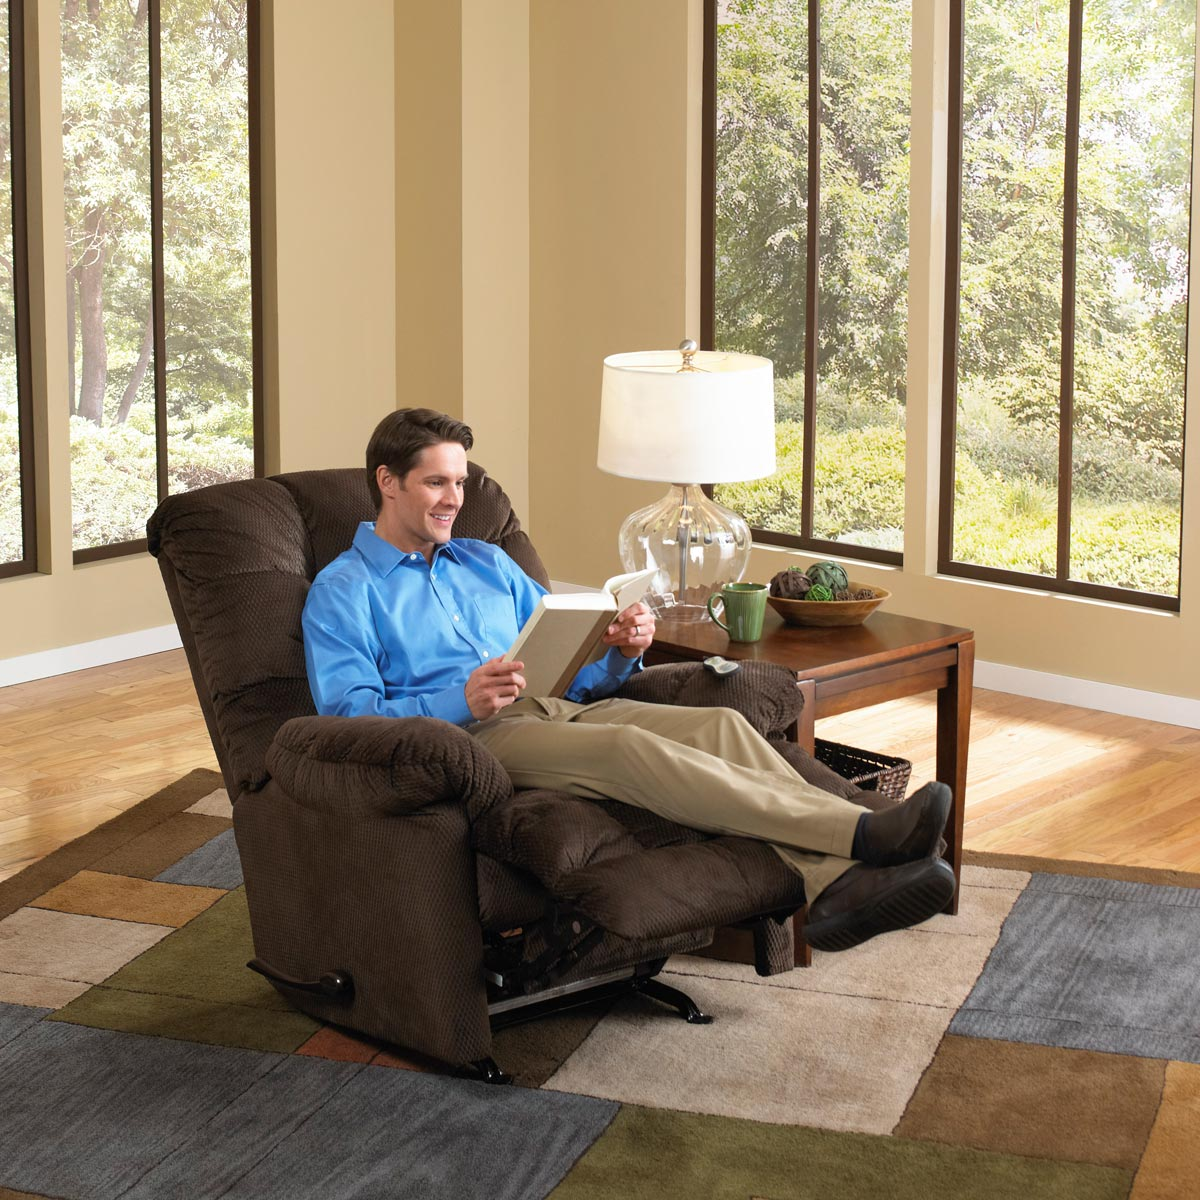 CatNapper Nettles Chaise Rocker Recliner with Deluxe Heat and Massage - Umber